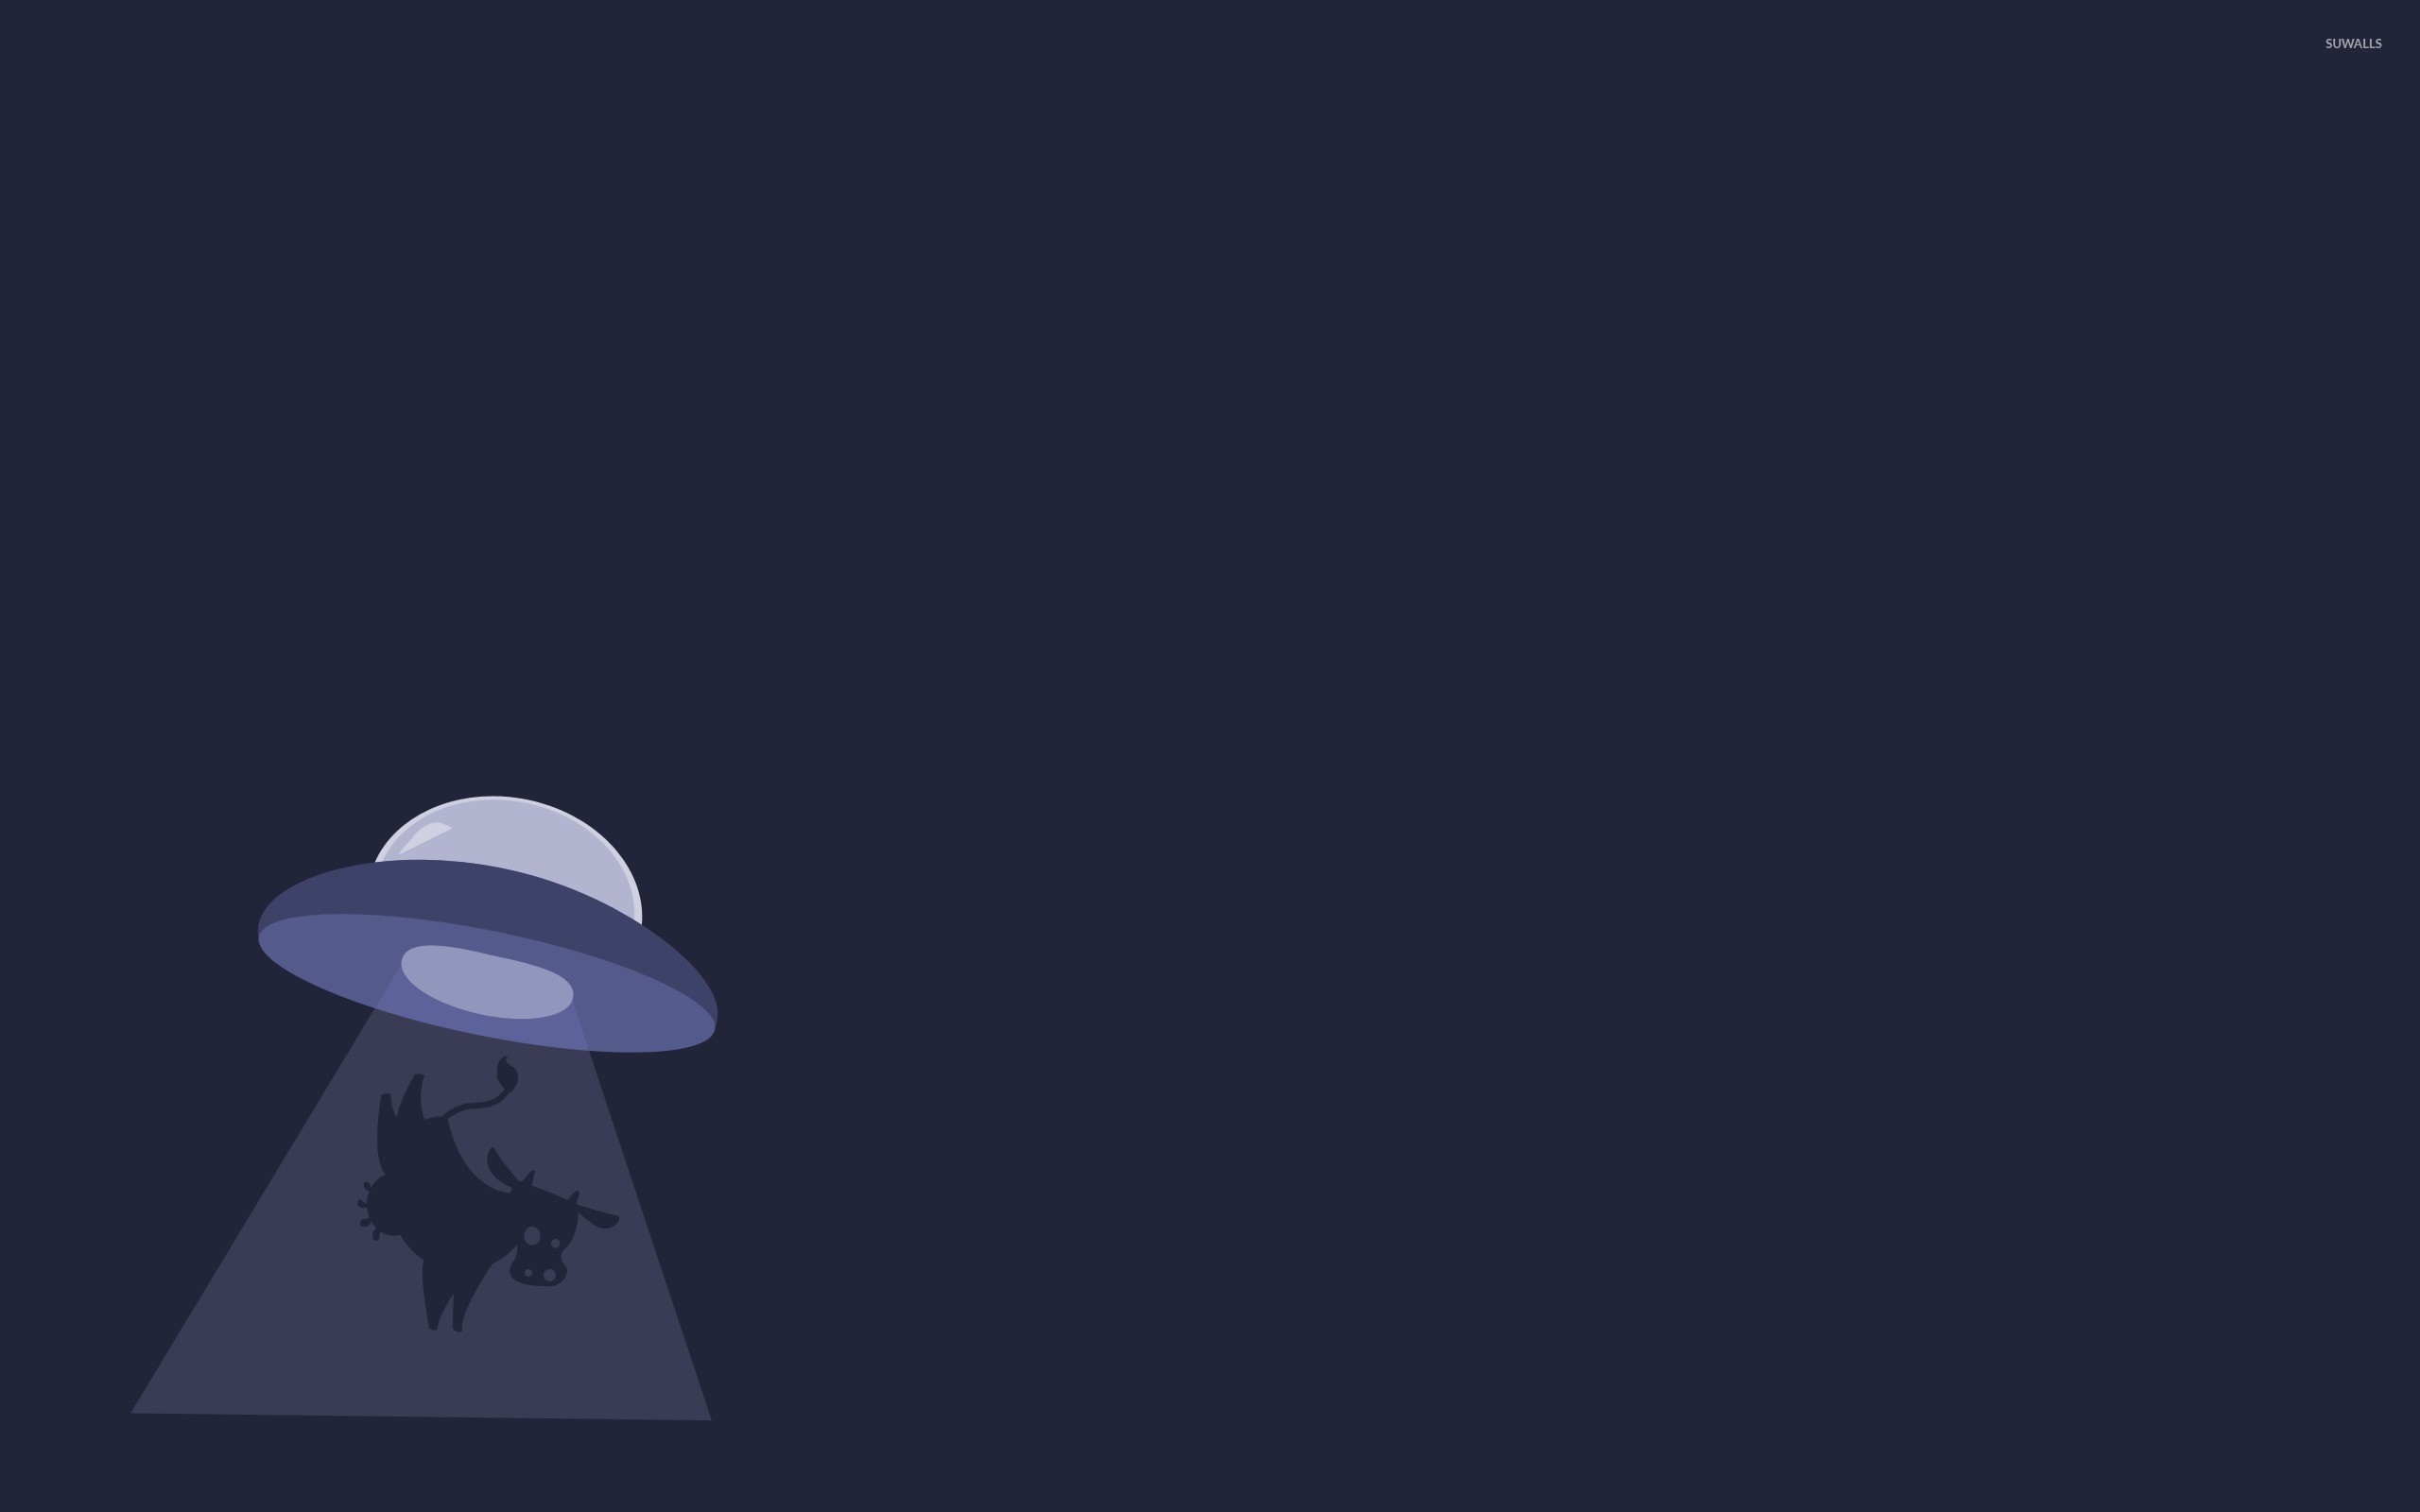 2560x1600 UFO abducting a cow wallpaper